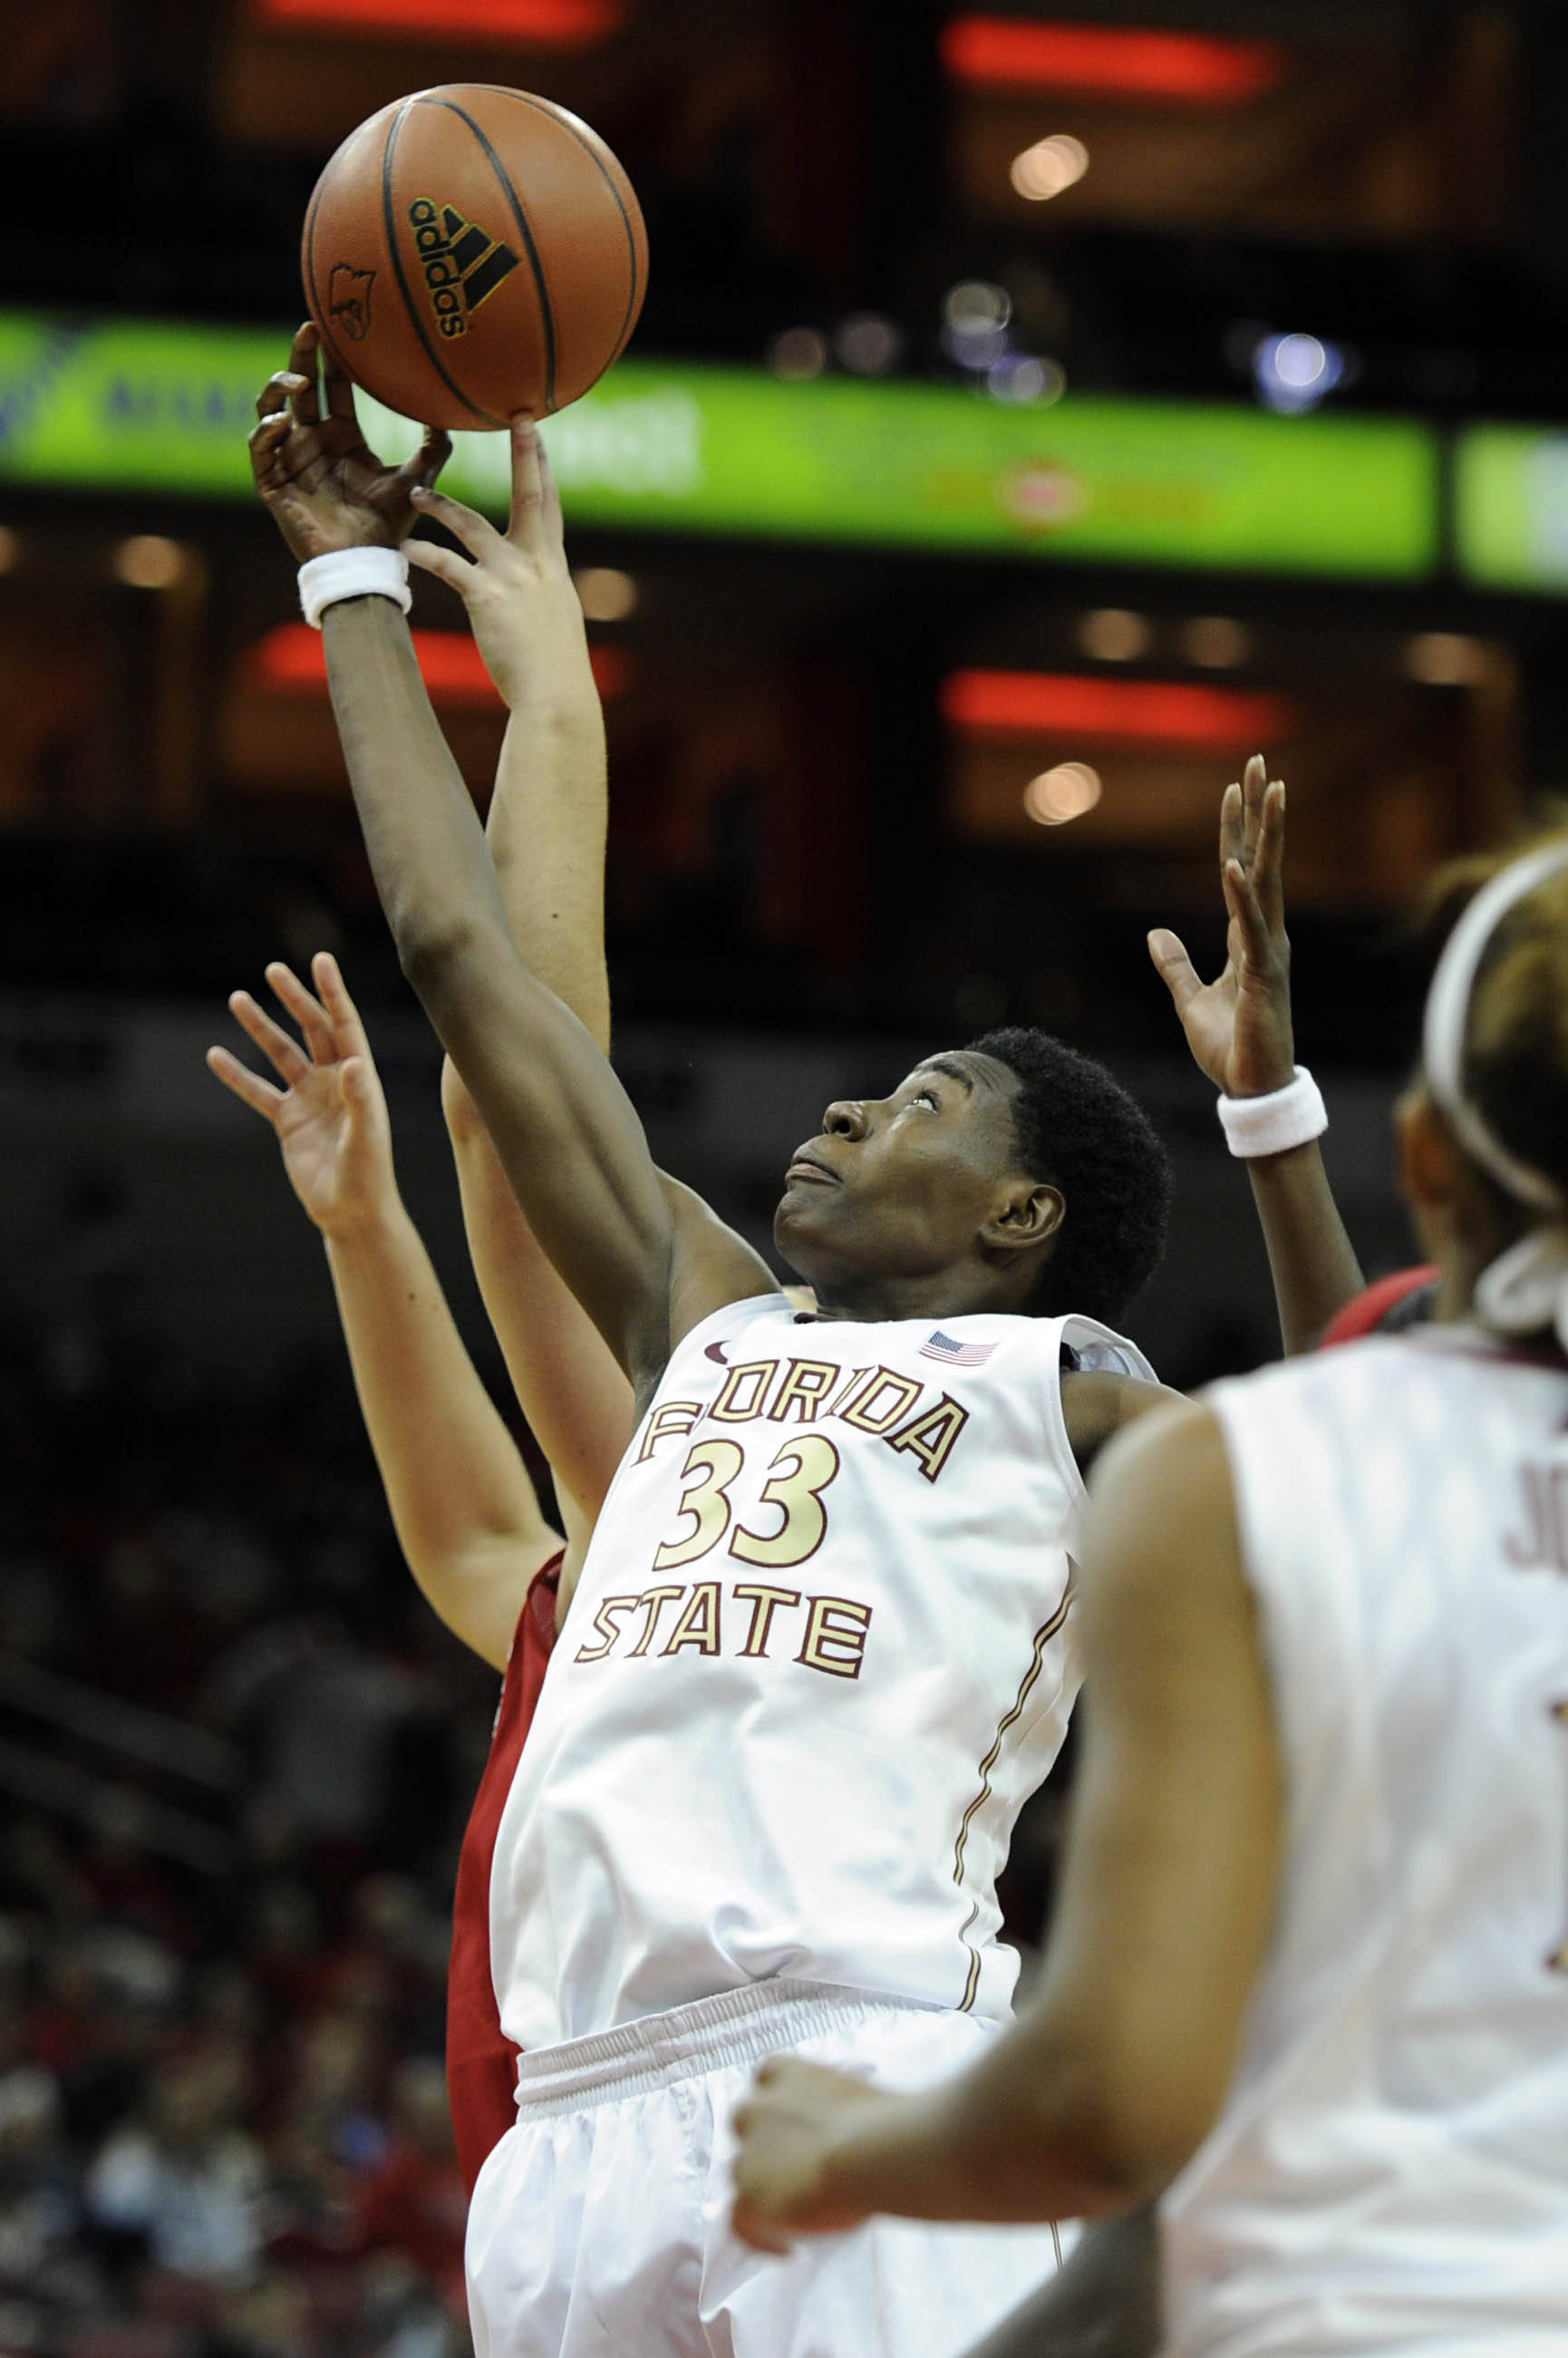 Nov 24, 2013; Louisville, KY, USA; Florida State Seminoles forward Natasha Howard (33) battles for a rebound during the second half against Louisville Cardinals at KFC YUM! Center. Louisville defeated Florida State 69-59.  Mandatory Credit: Jamie Rhodes-USA TODAY Sports